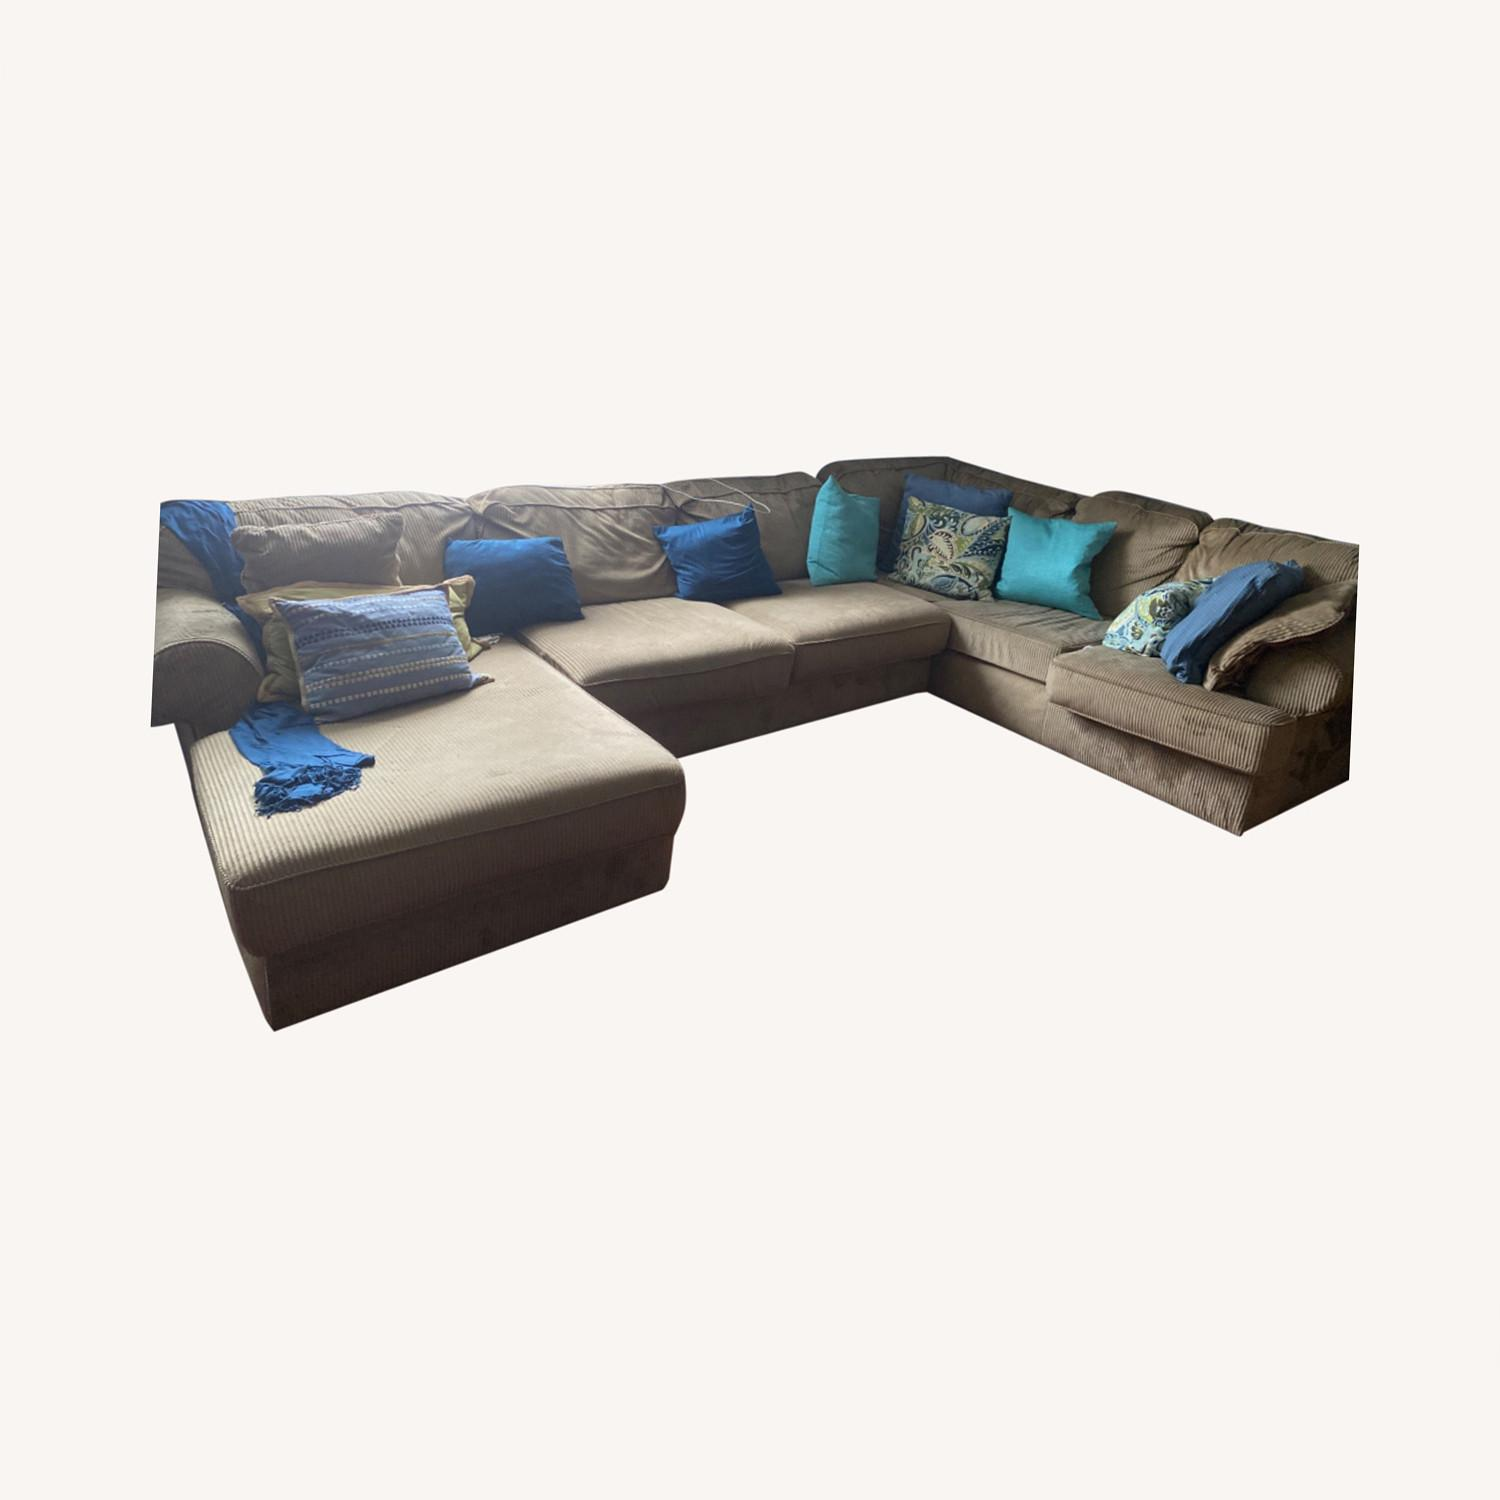 3 Piece Sectional - image-0